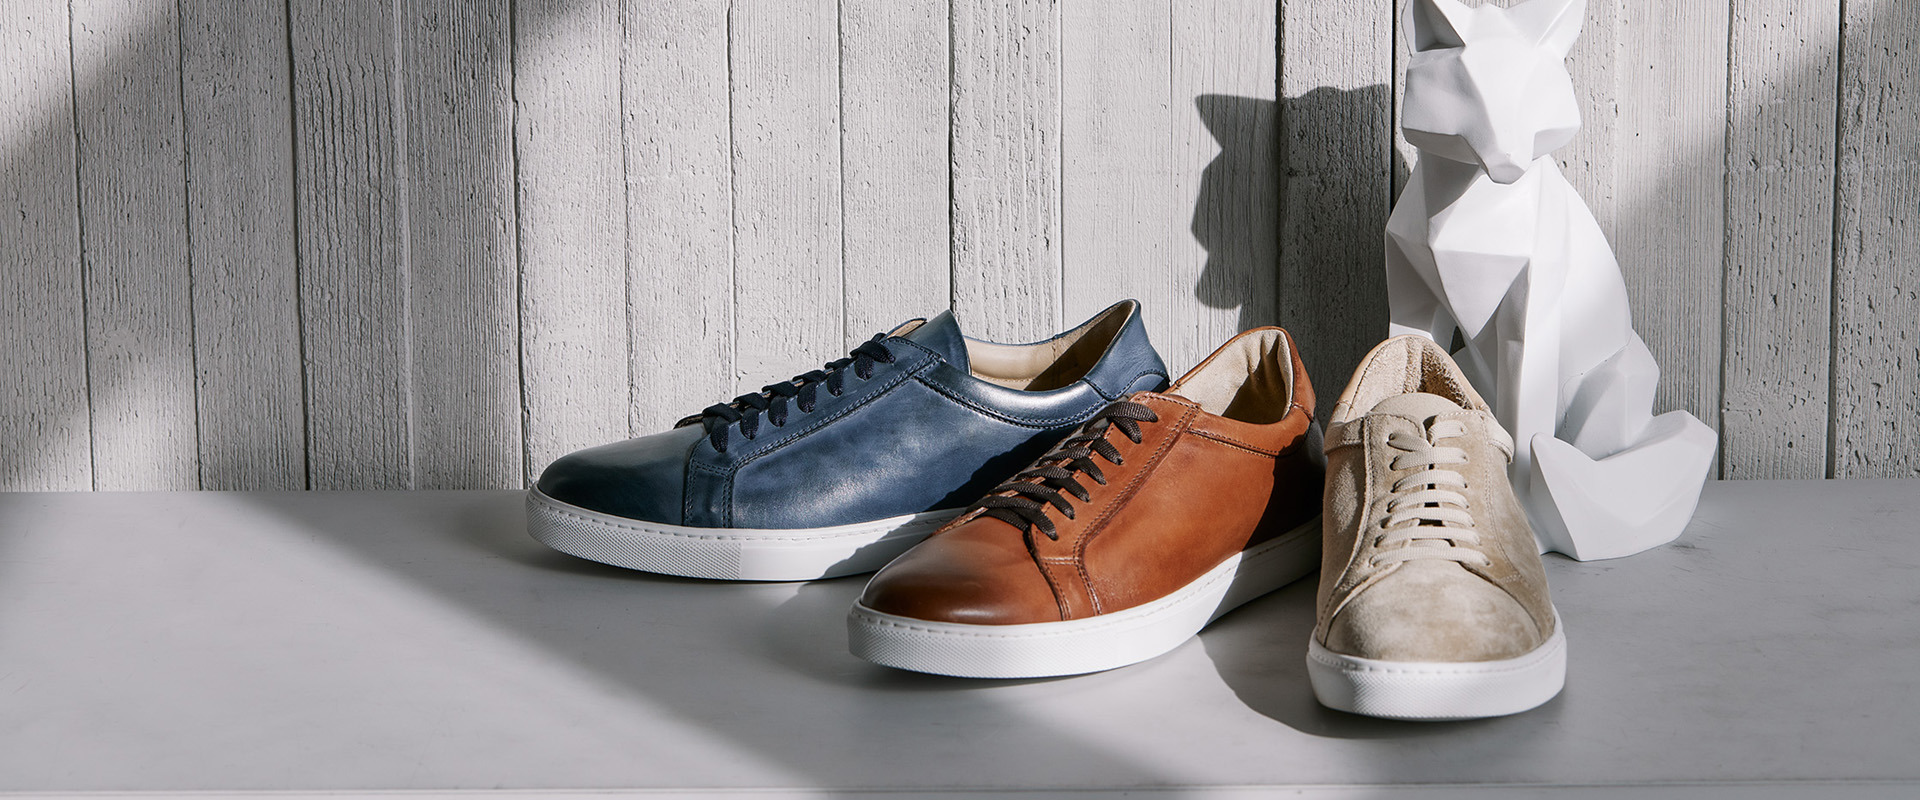 Chaussures Casual